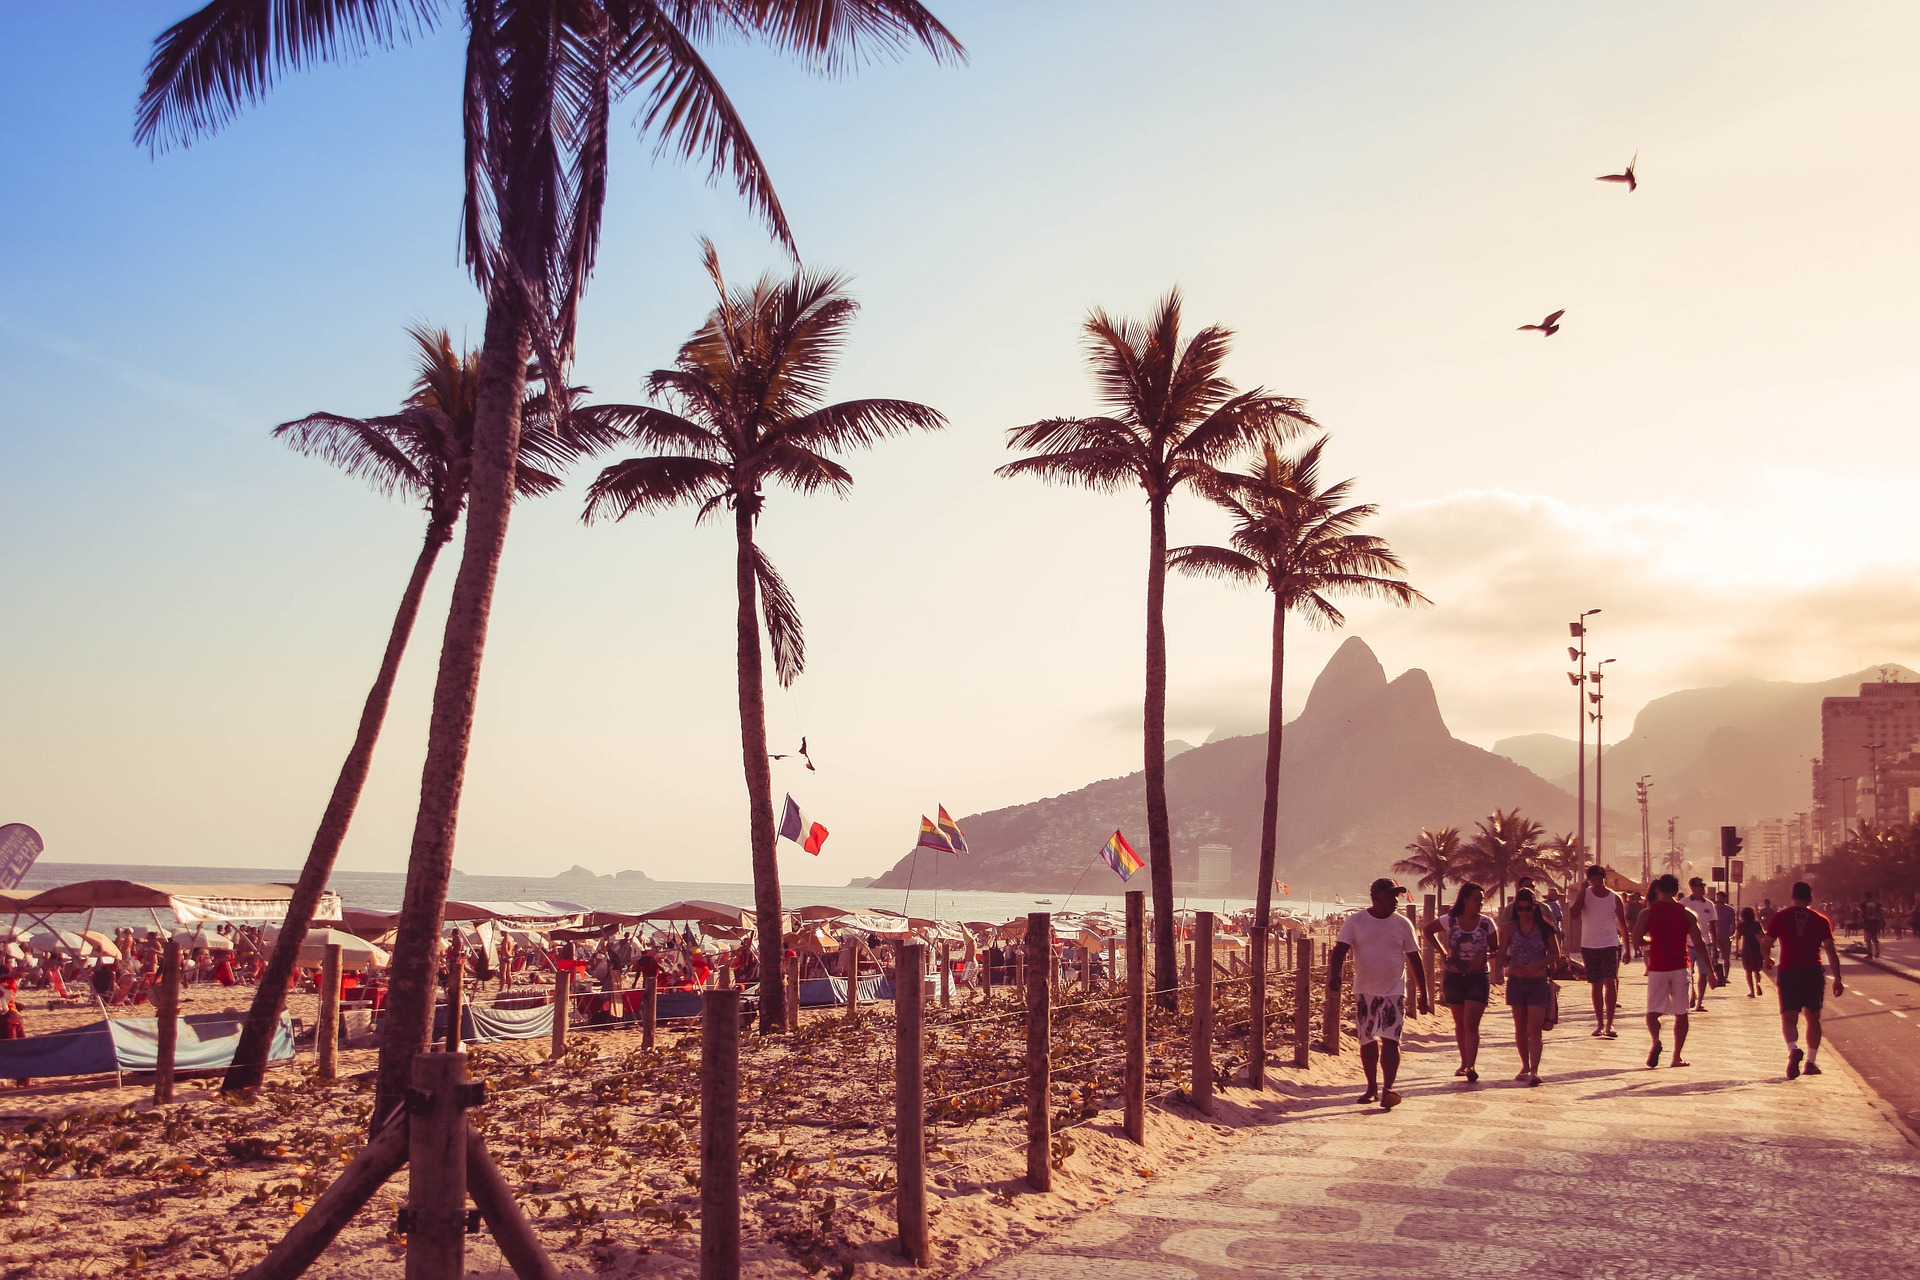 Brazil tourism and high inflation